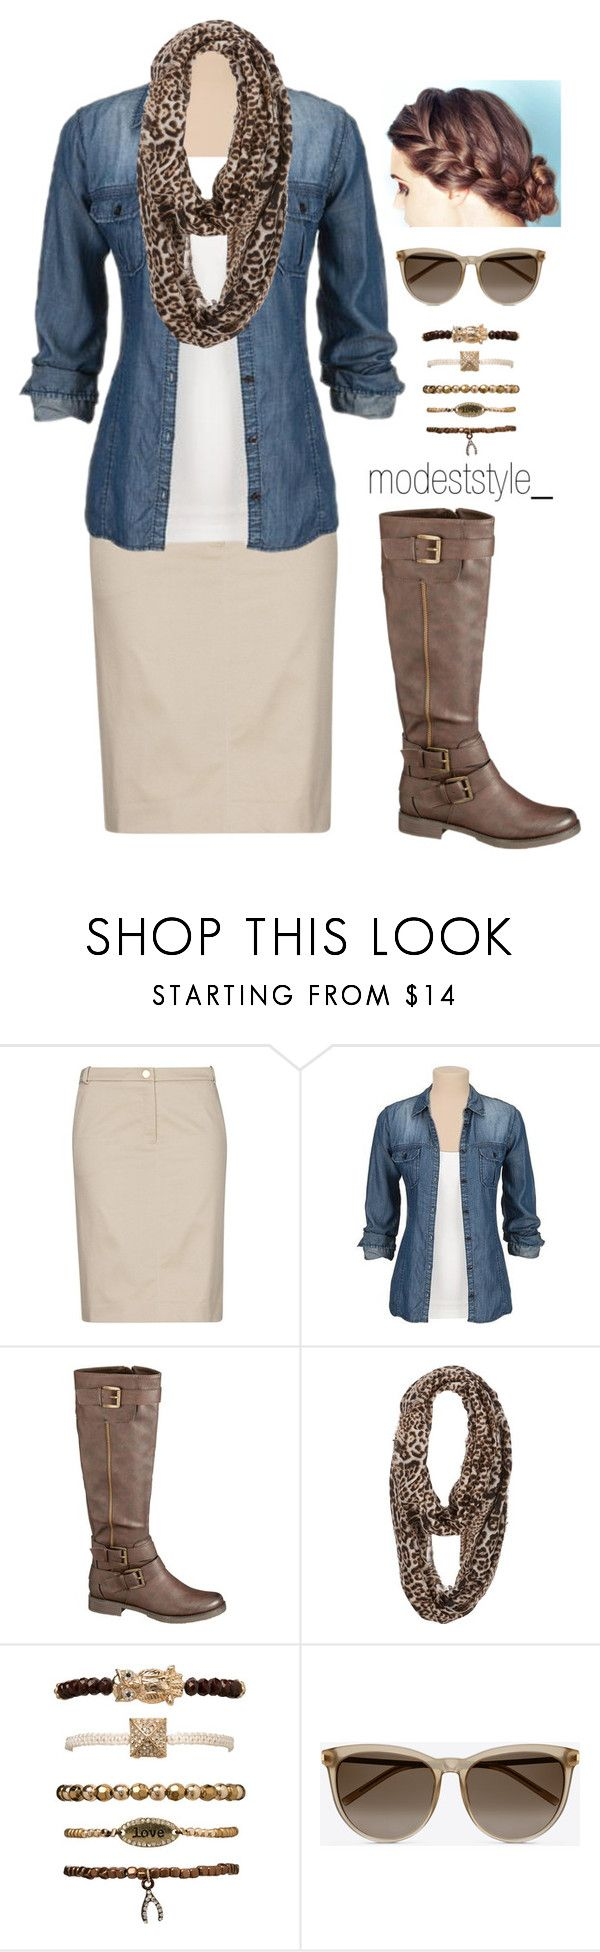 """Leopard and denim"" by modeststyle-studio ❤ liked on Polyvore featuring MANGO, maurices and Yves Saint Laurent"